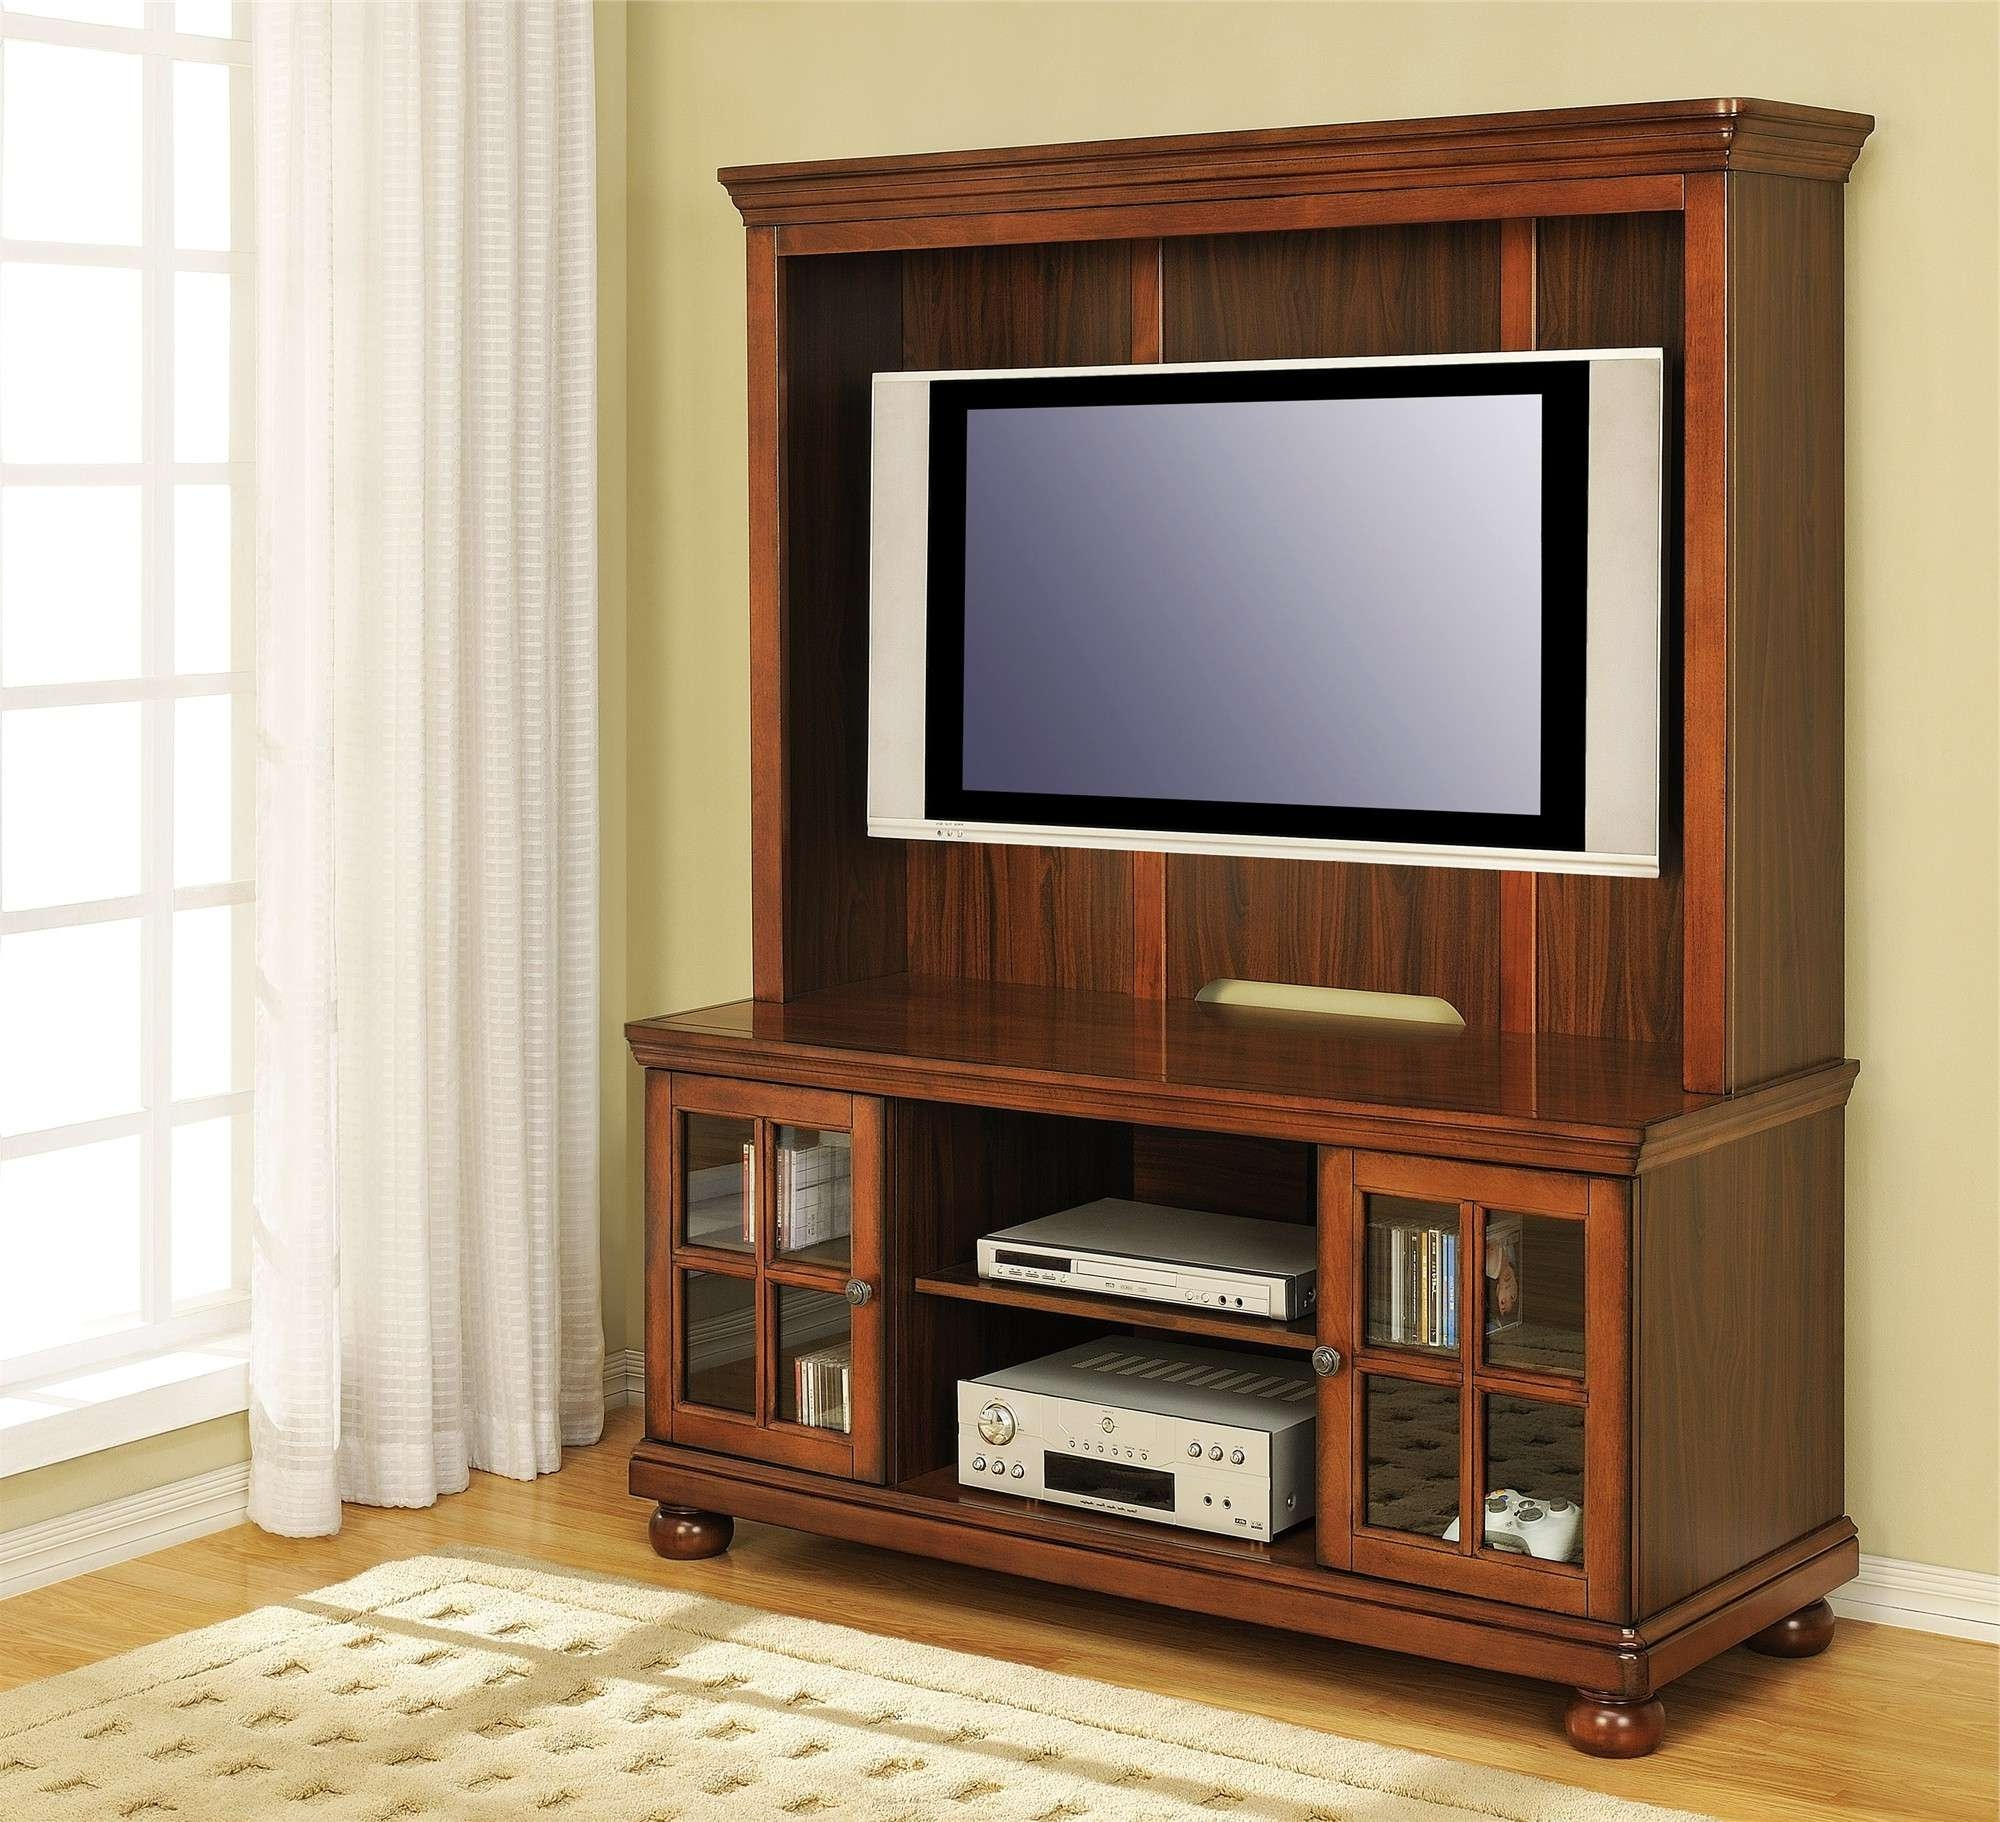 Corner Oak Tv Cabinets For Flat Screens With Doors • Corner Cabinets Regarding Oak Tv Cabinets For Flat Screens (View 3 of 20)